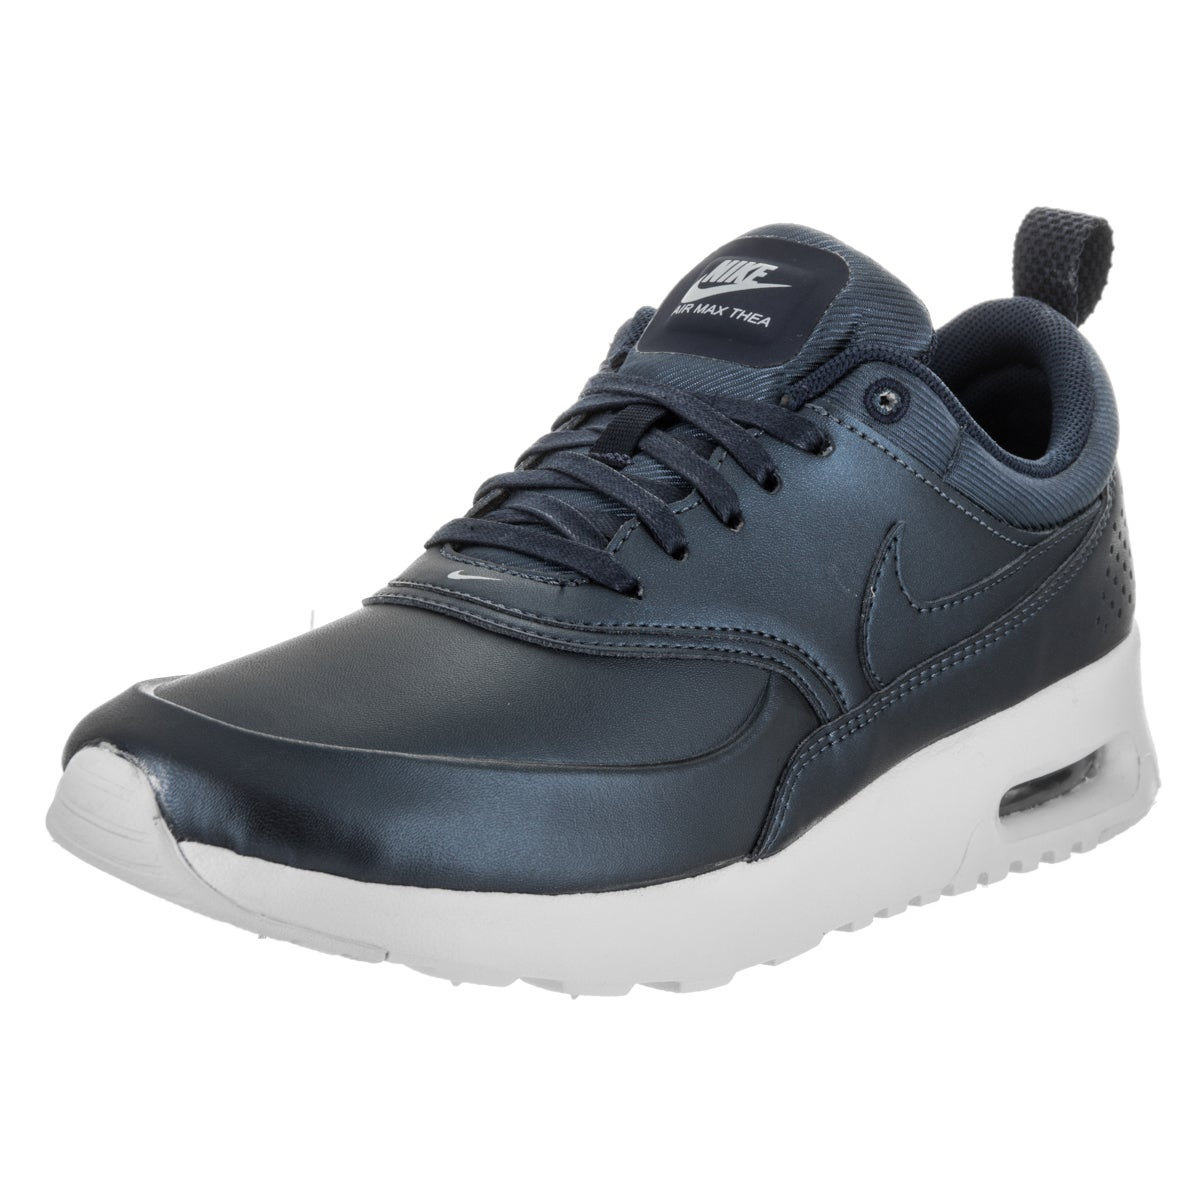 Nike Women's Air Max Thea SE Blue Synthetic Leather Runni...